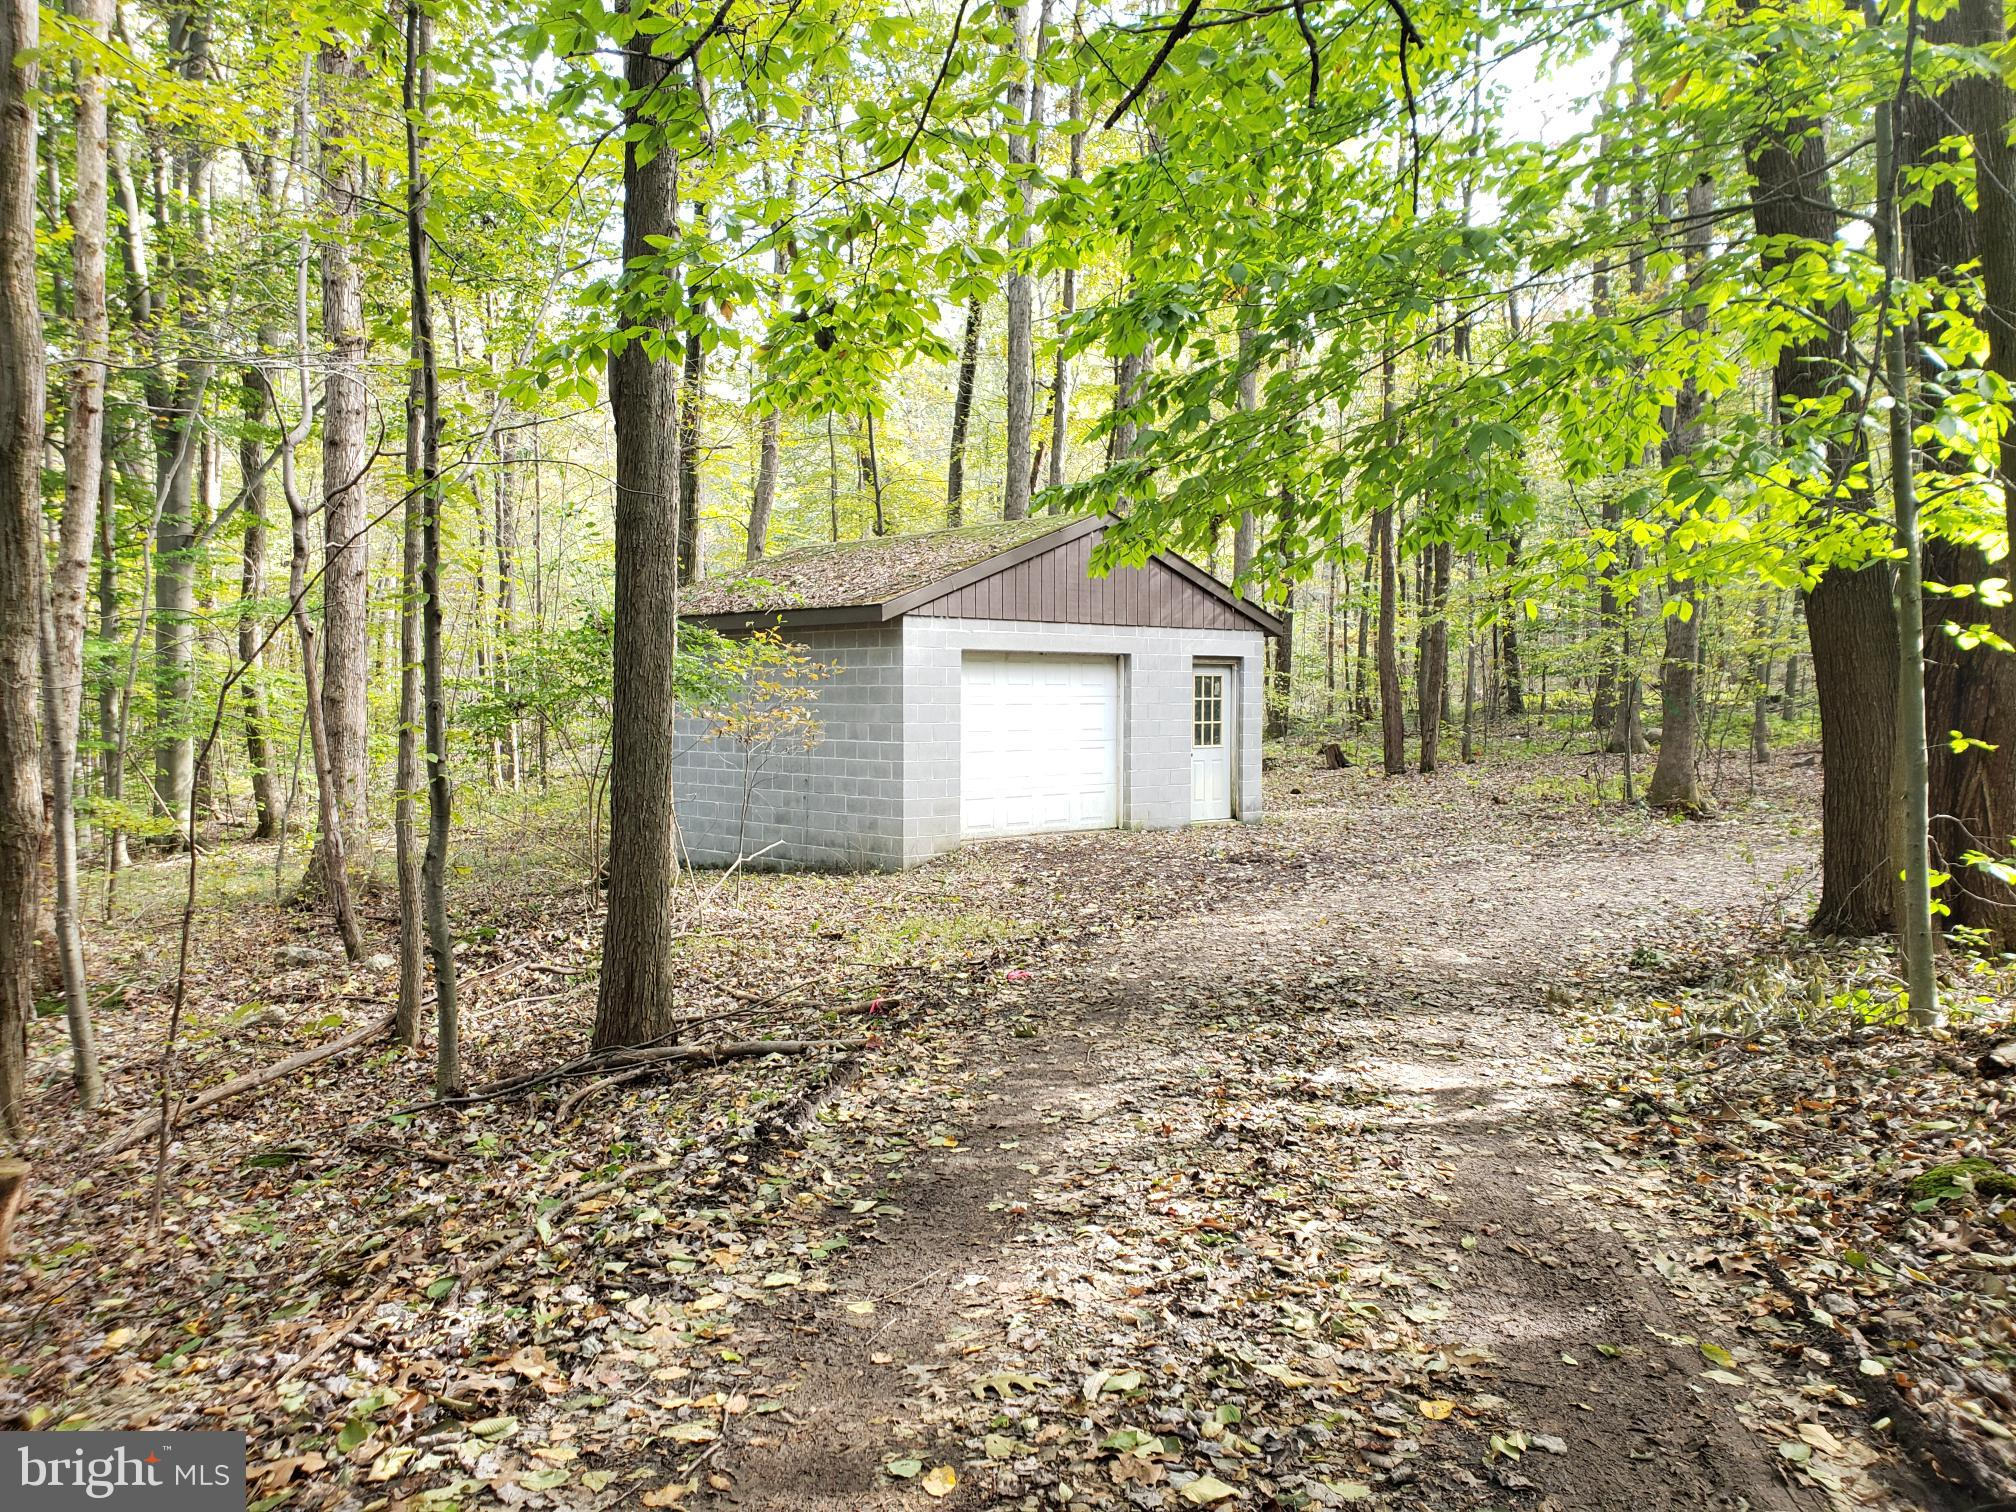 LOT 3 8010 FORT ROBINSON RD, ICKESBURG, PA 17037